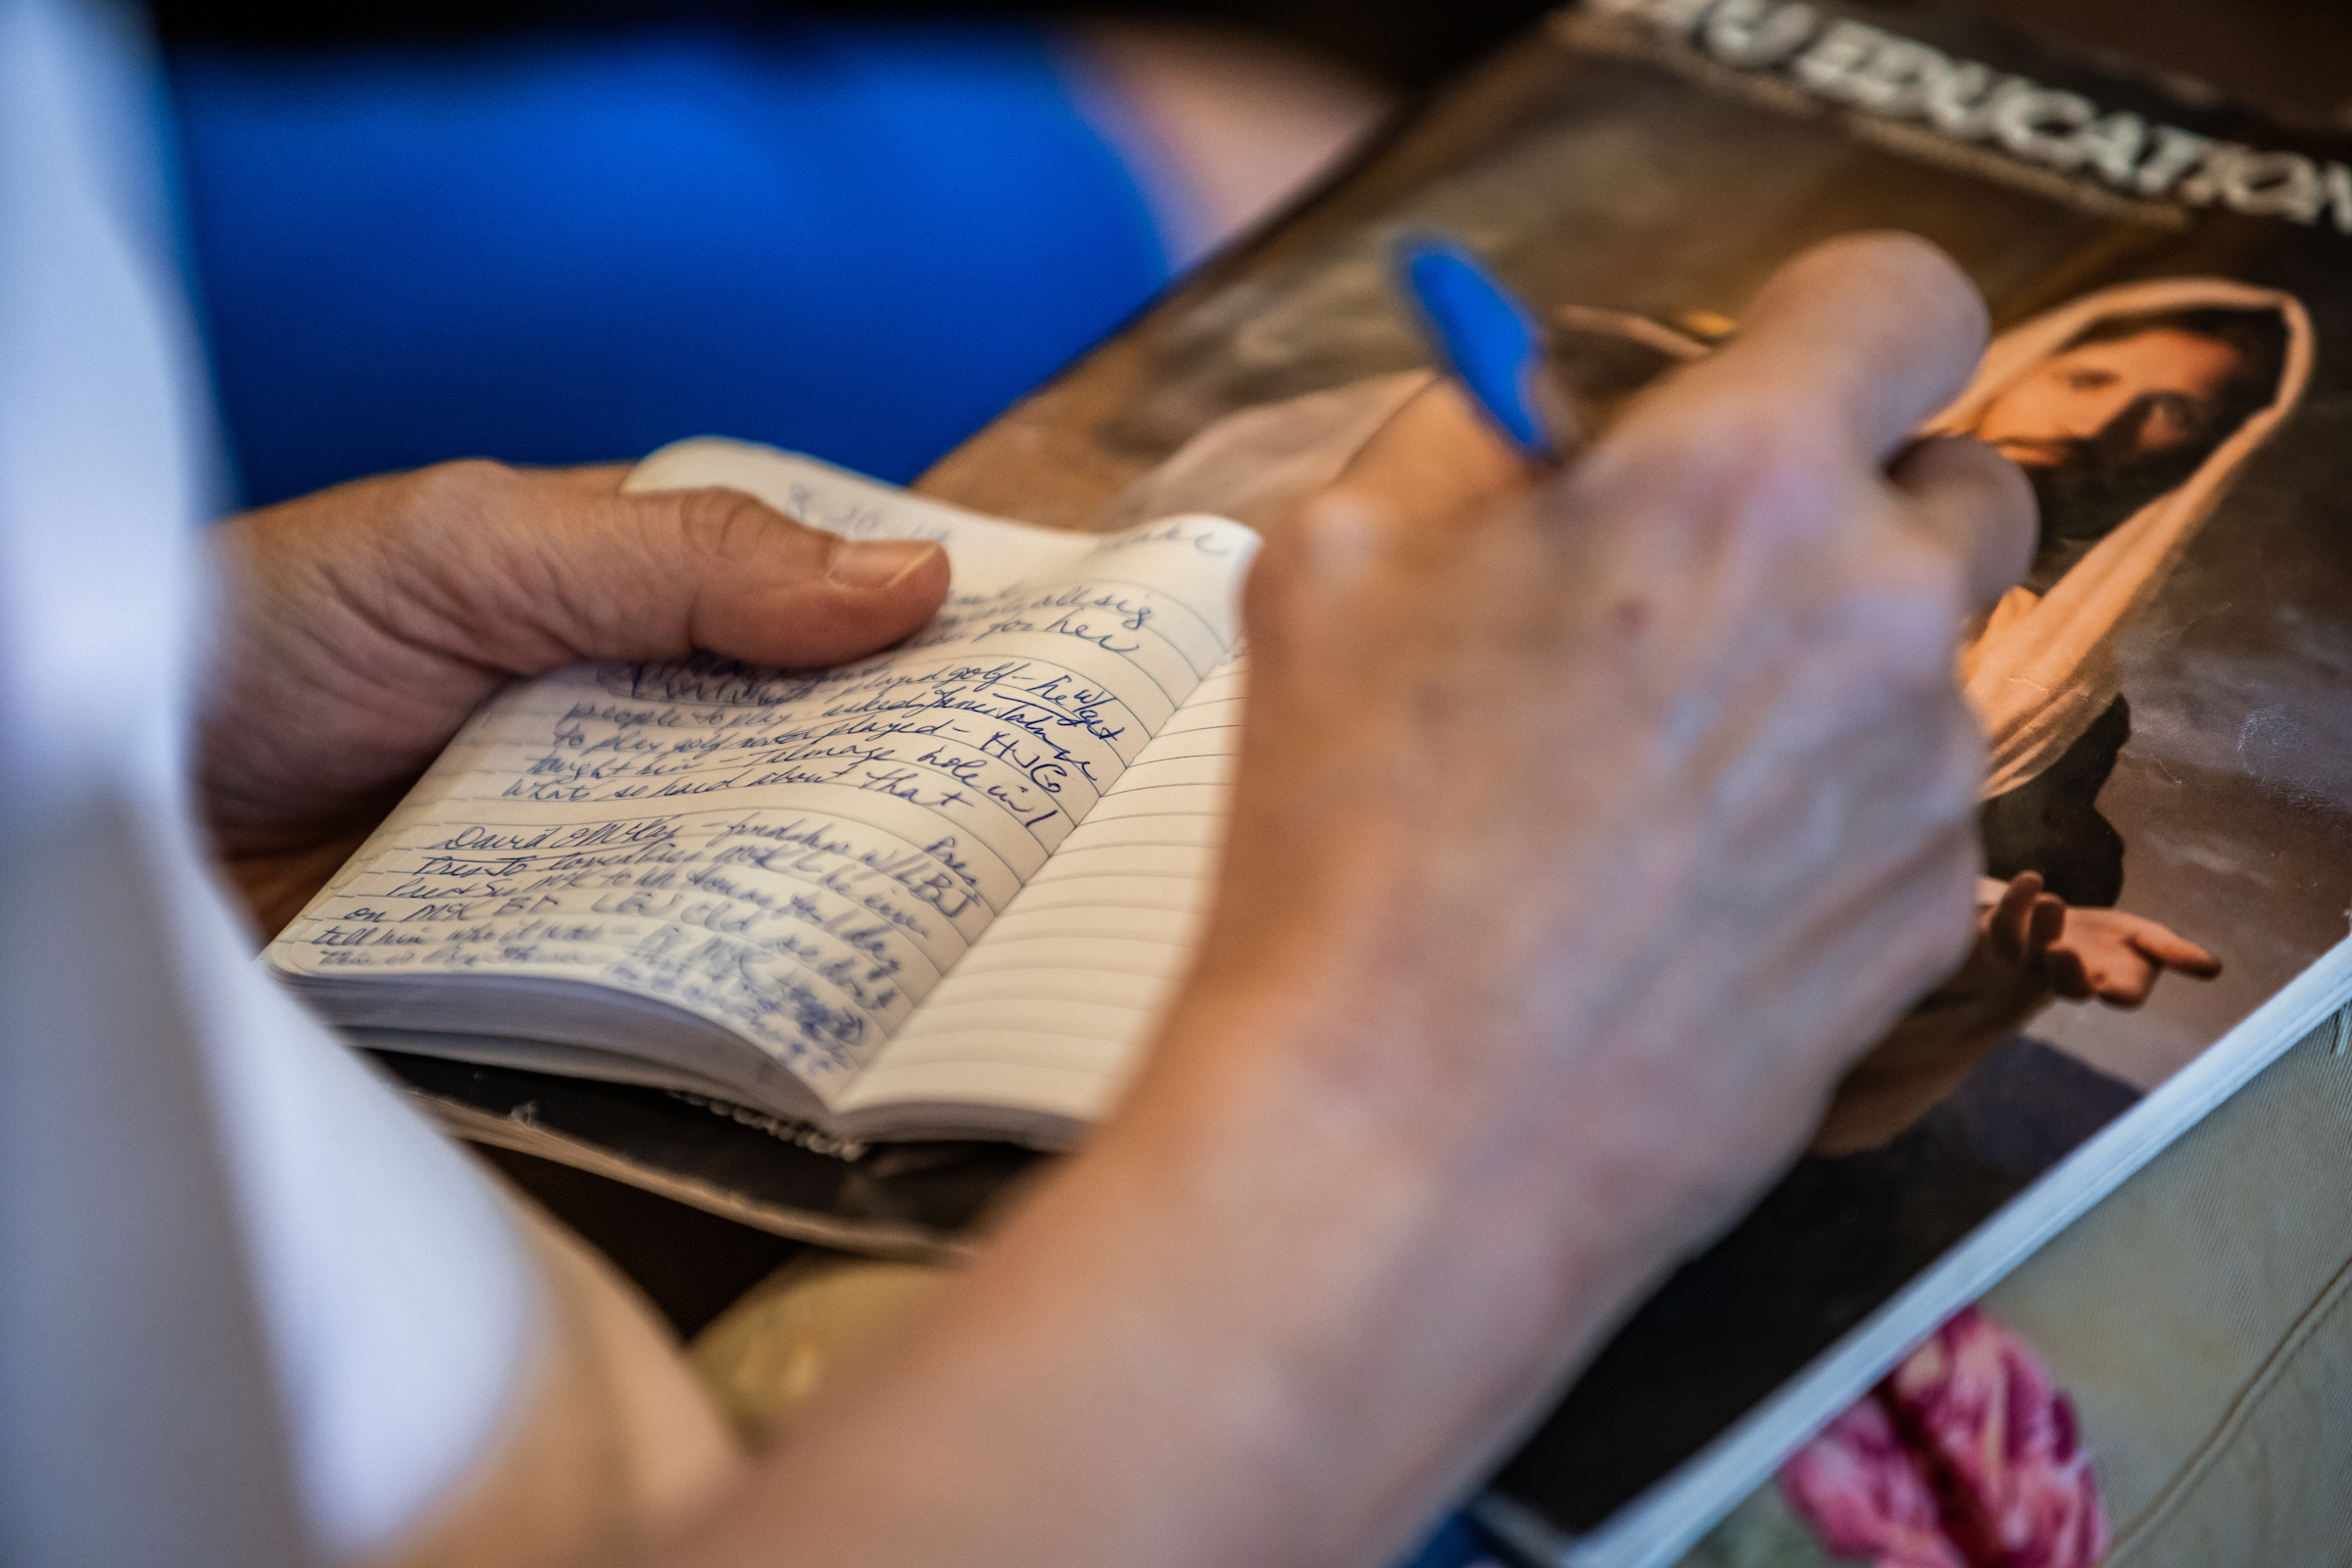 An attendee of BYU Education Week takes notes while attending a class on the BYU campus in Provo, Utah, on Aug. 21, 2019.